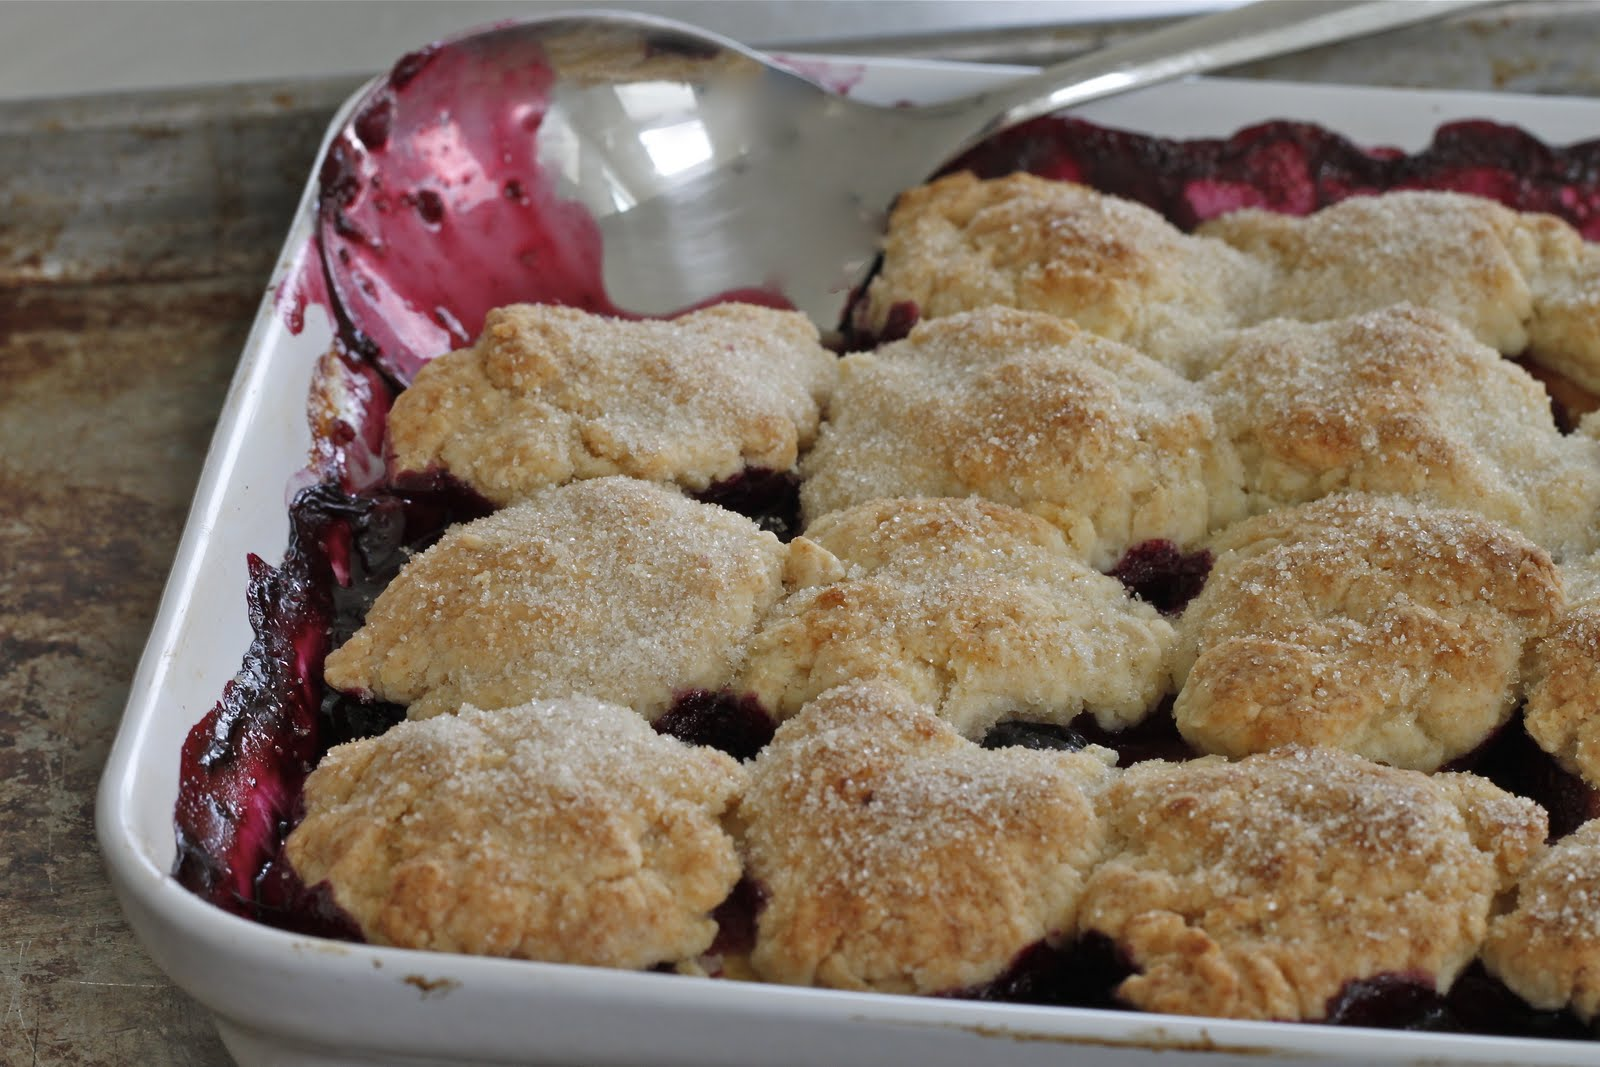 ... berry cobbler berry cobbler pie bars basic berry cobbler peach cobbler